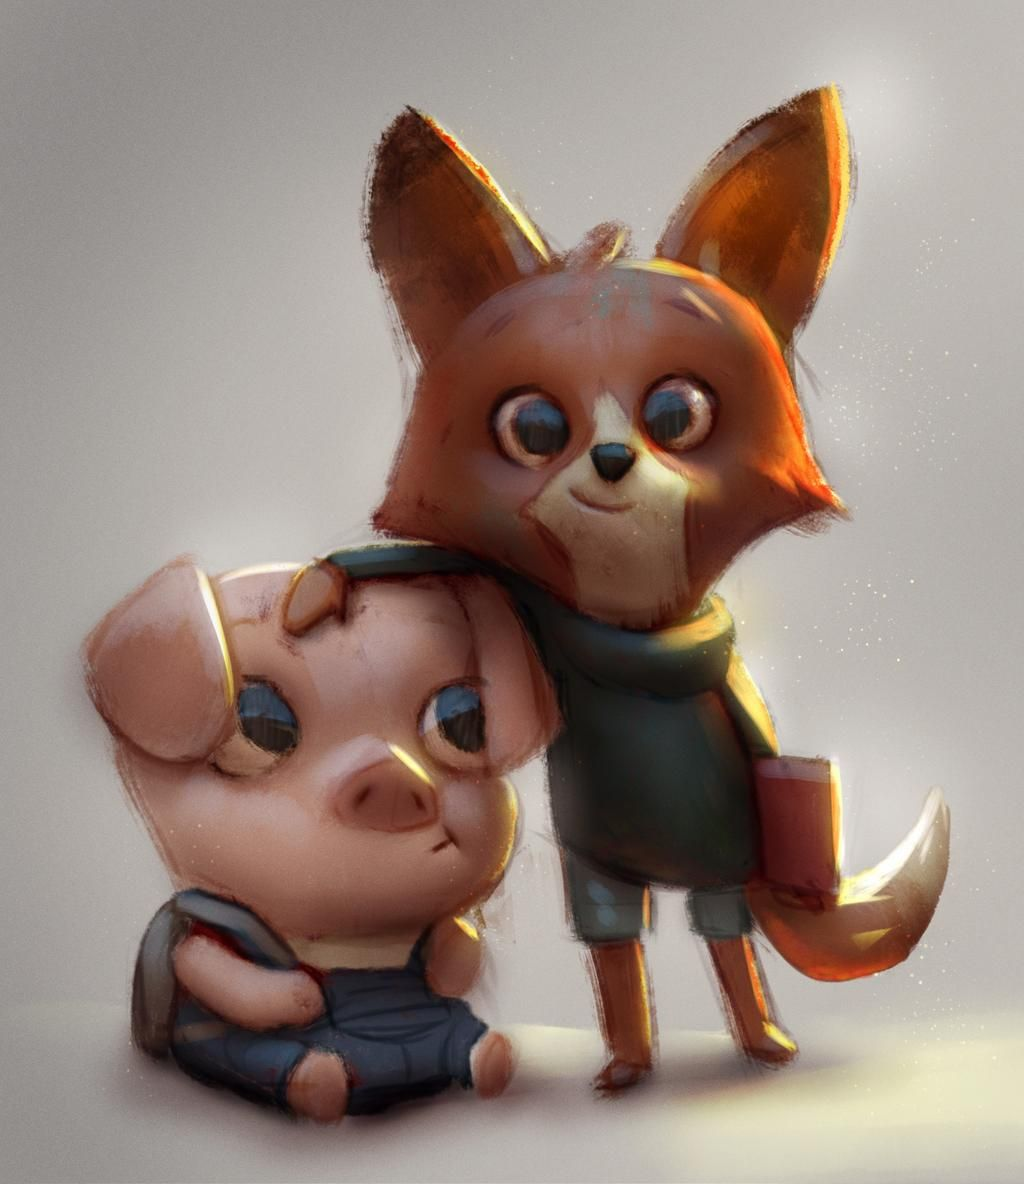 RT @Tysmurph: #PigandFox for @Sketch_Dailies today! #TheDamKeeper  grats to @tonkohouse et al! #Sketch_Dailies